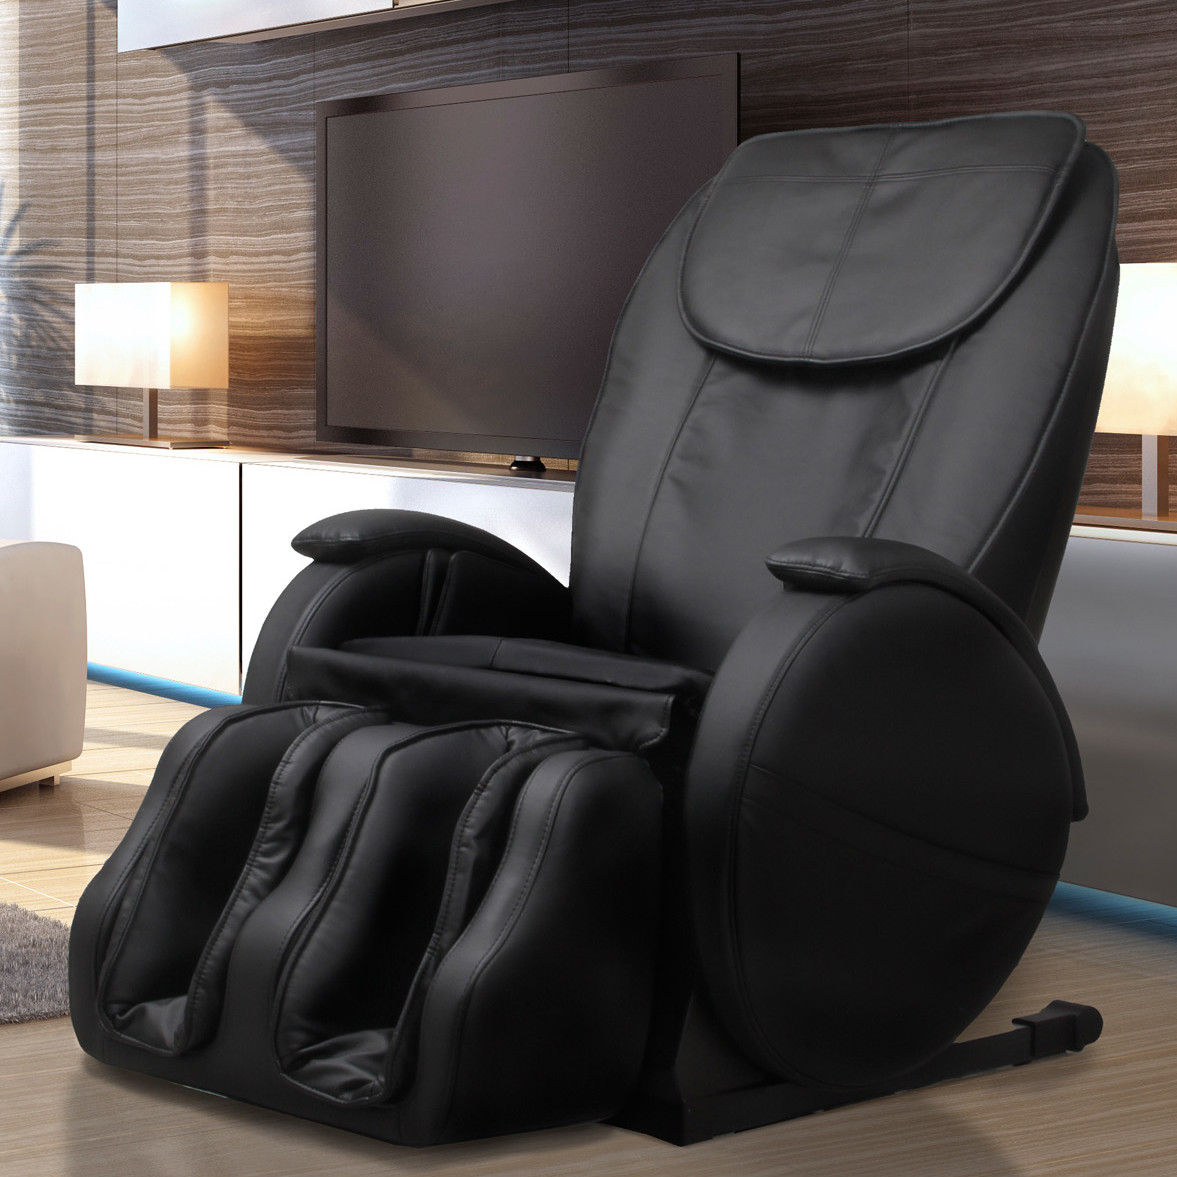 5 luxurious zero gravity massage chairs for your home for Living room zero gravity chair